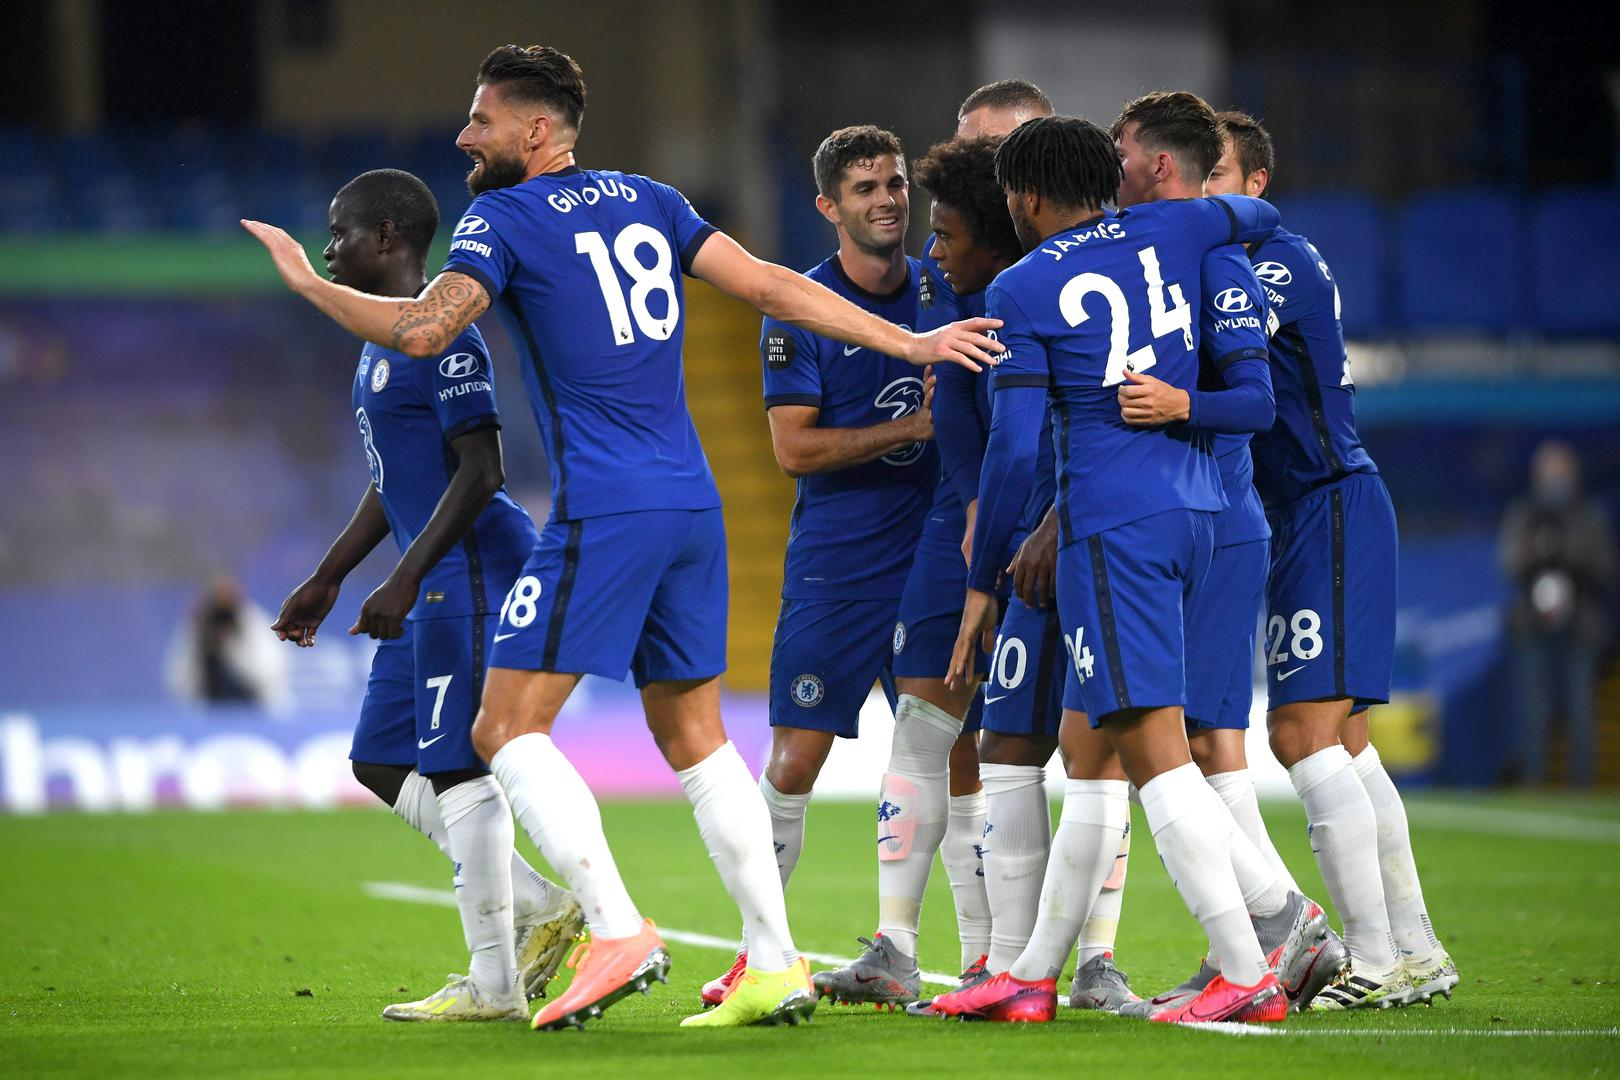 Chelsea players celebrate a goal.